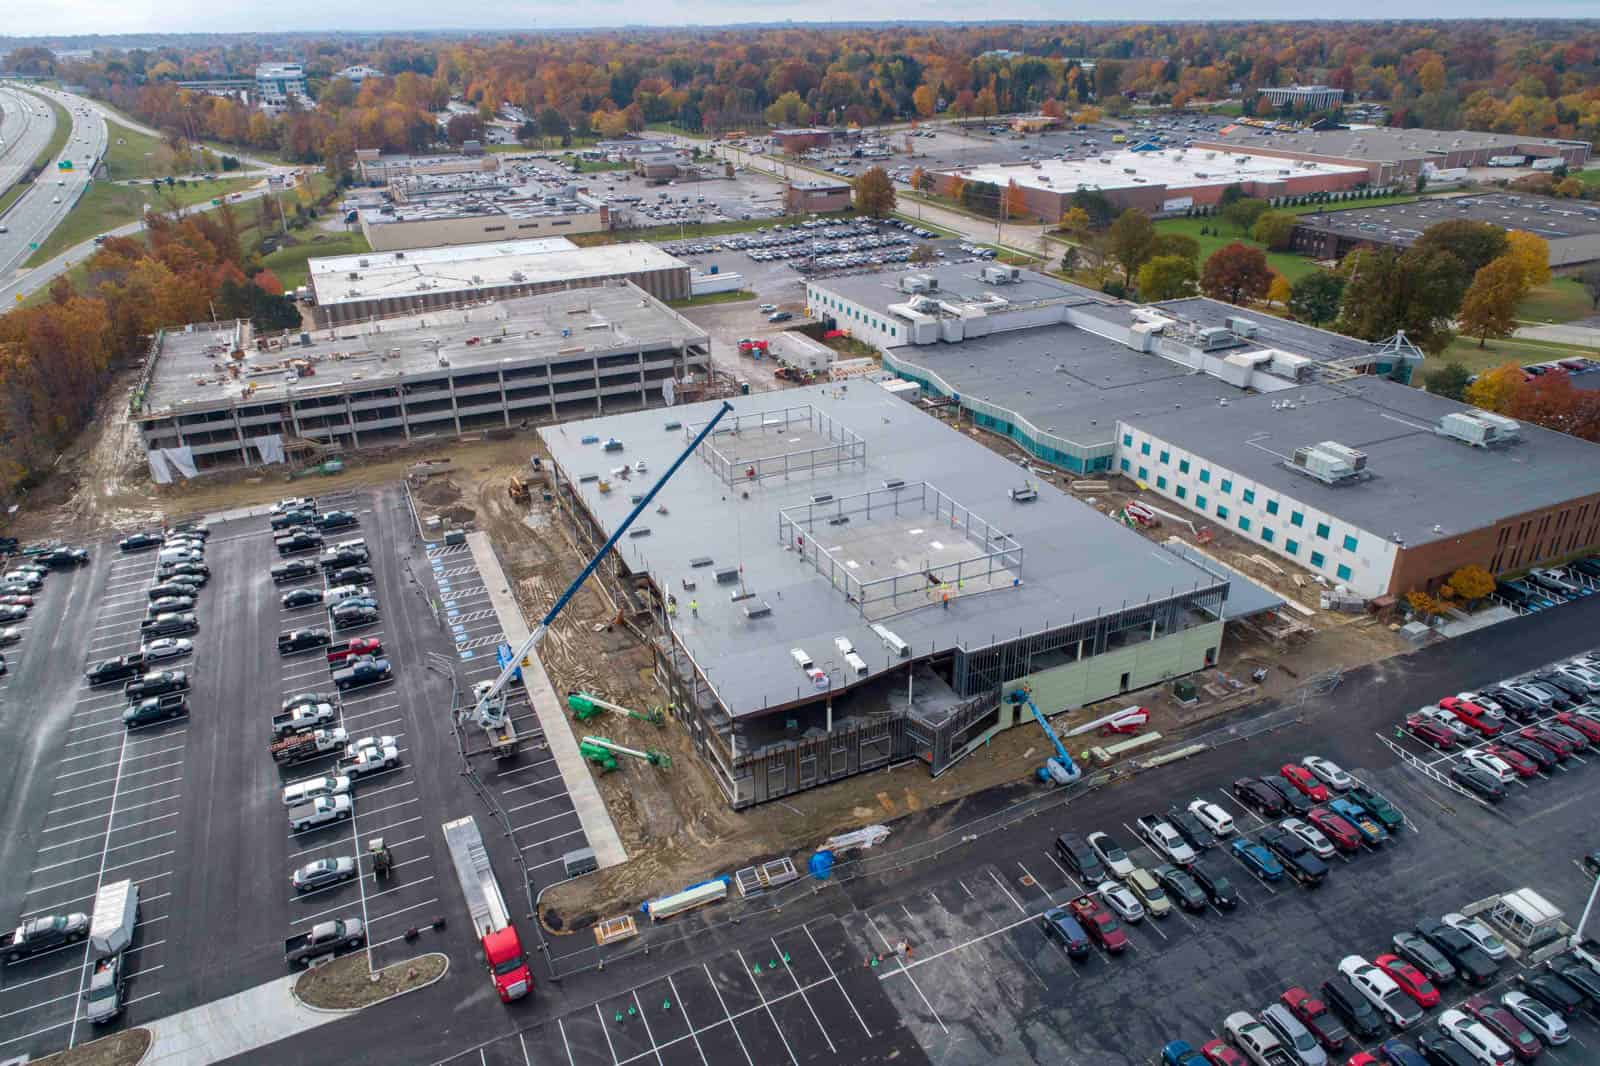 aerial drone photo of commercial office building and parking garage construction project in Highland Heights, Ohio